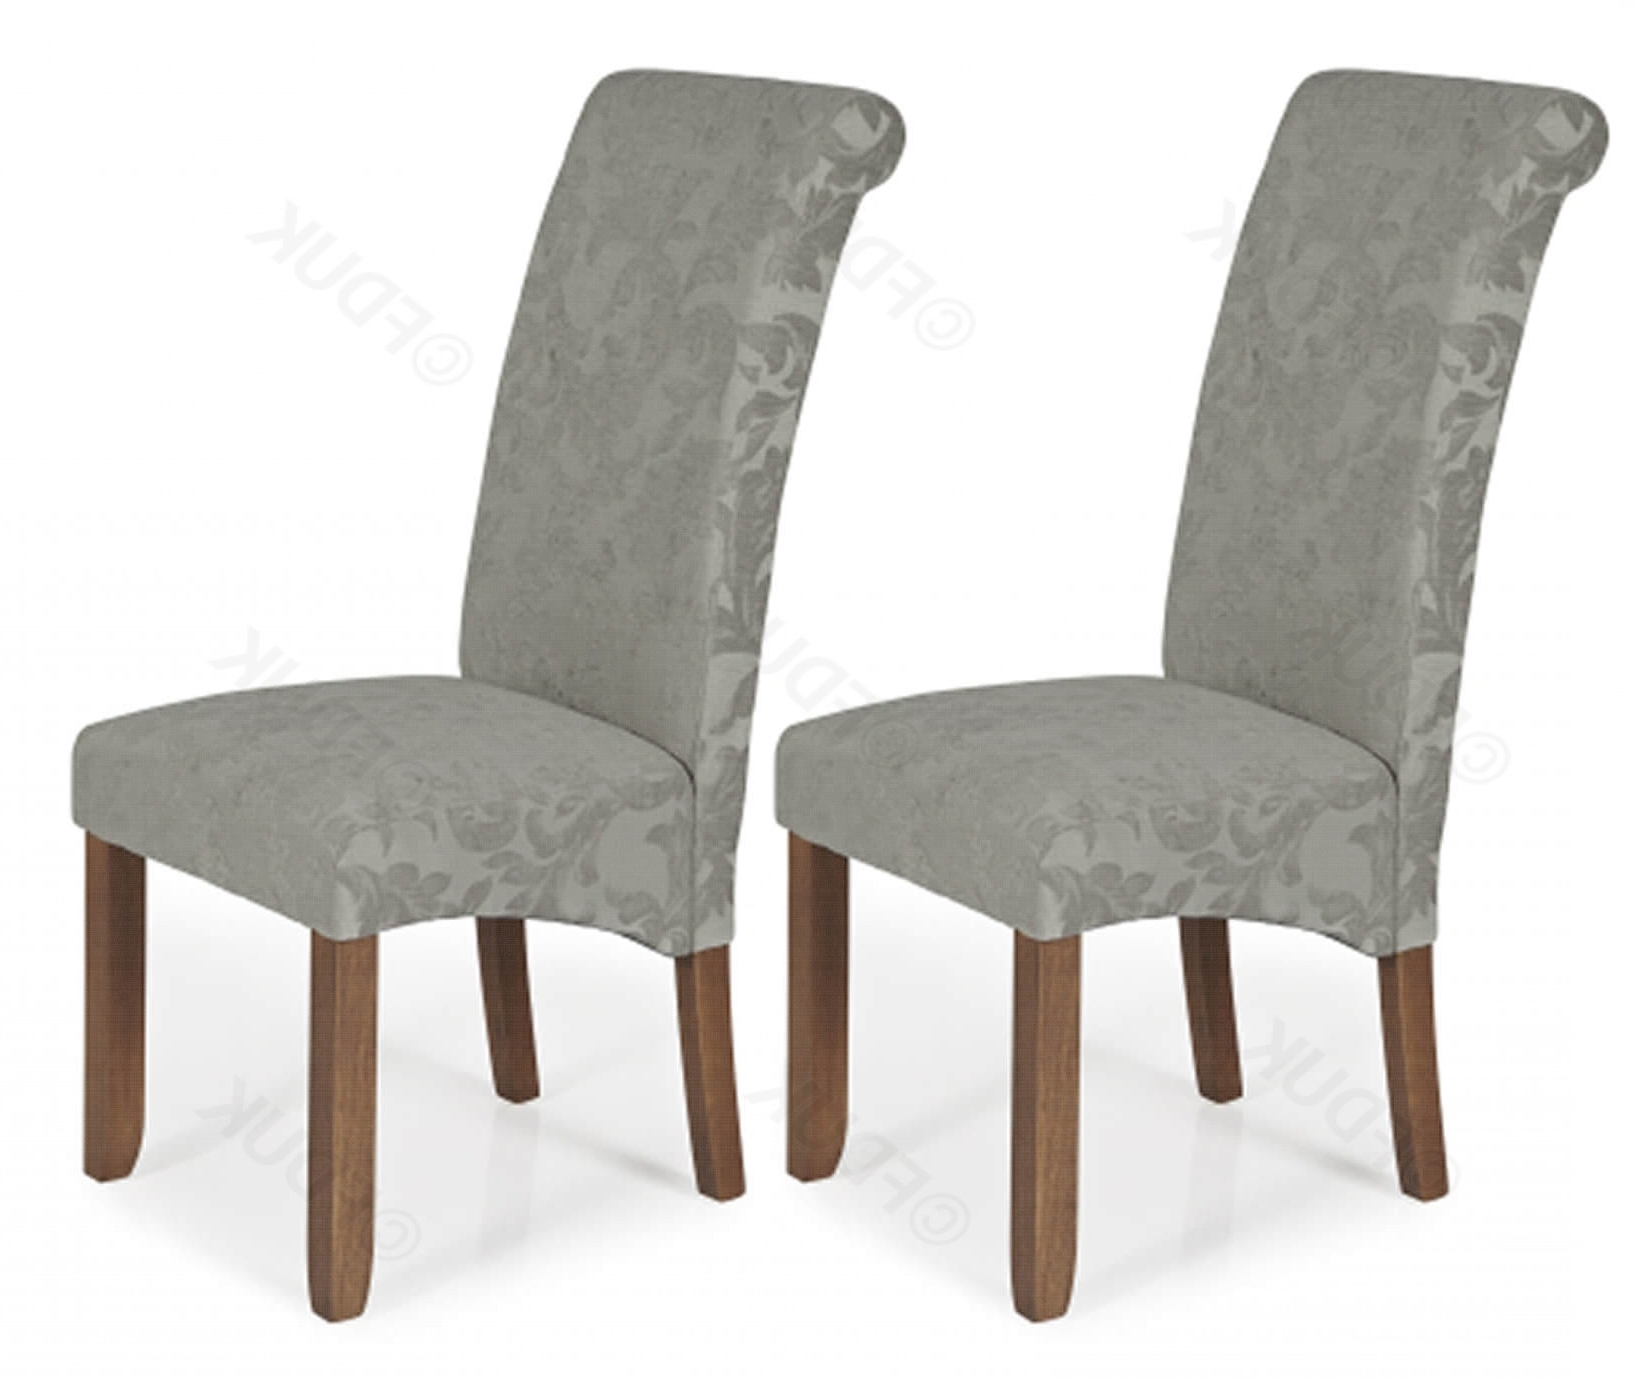 Current Serene Furnishings Kingston Silver Floral Chairs With Walnut Legs Fduk Best  Price Guarantee We Will Beat Our Competitors Price! Give Our Sales Team A Within Fabric Dining Chairs (View 11 of 25)